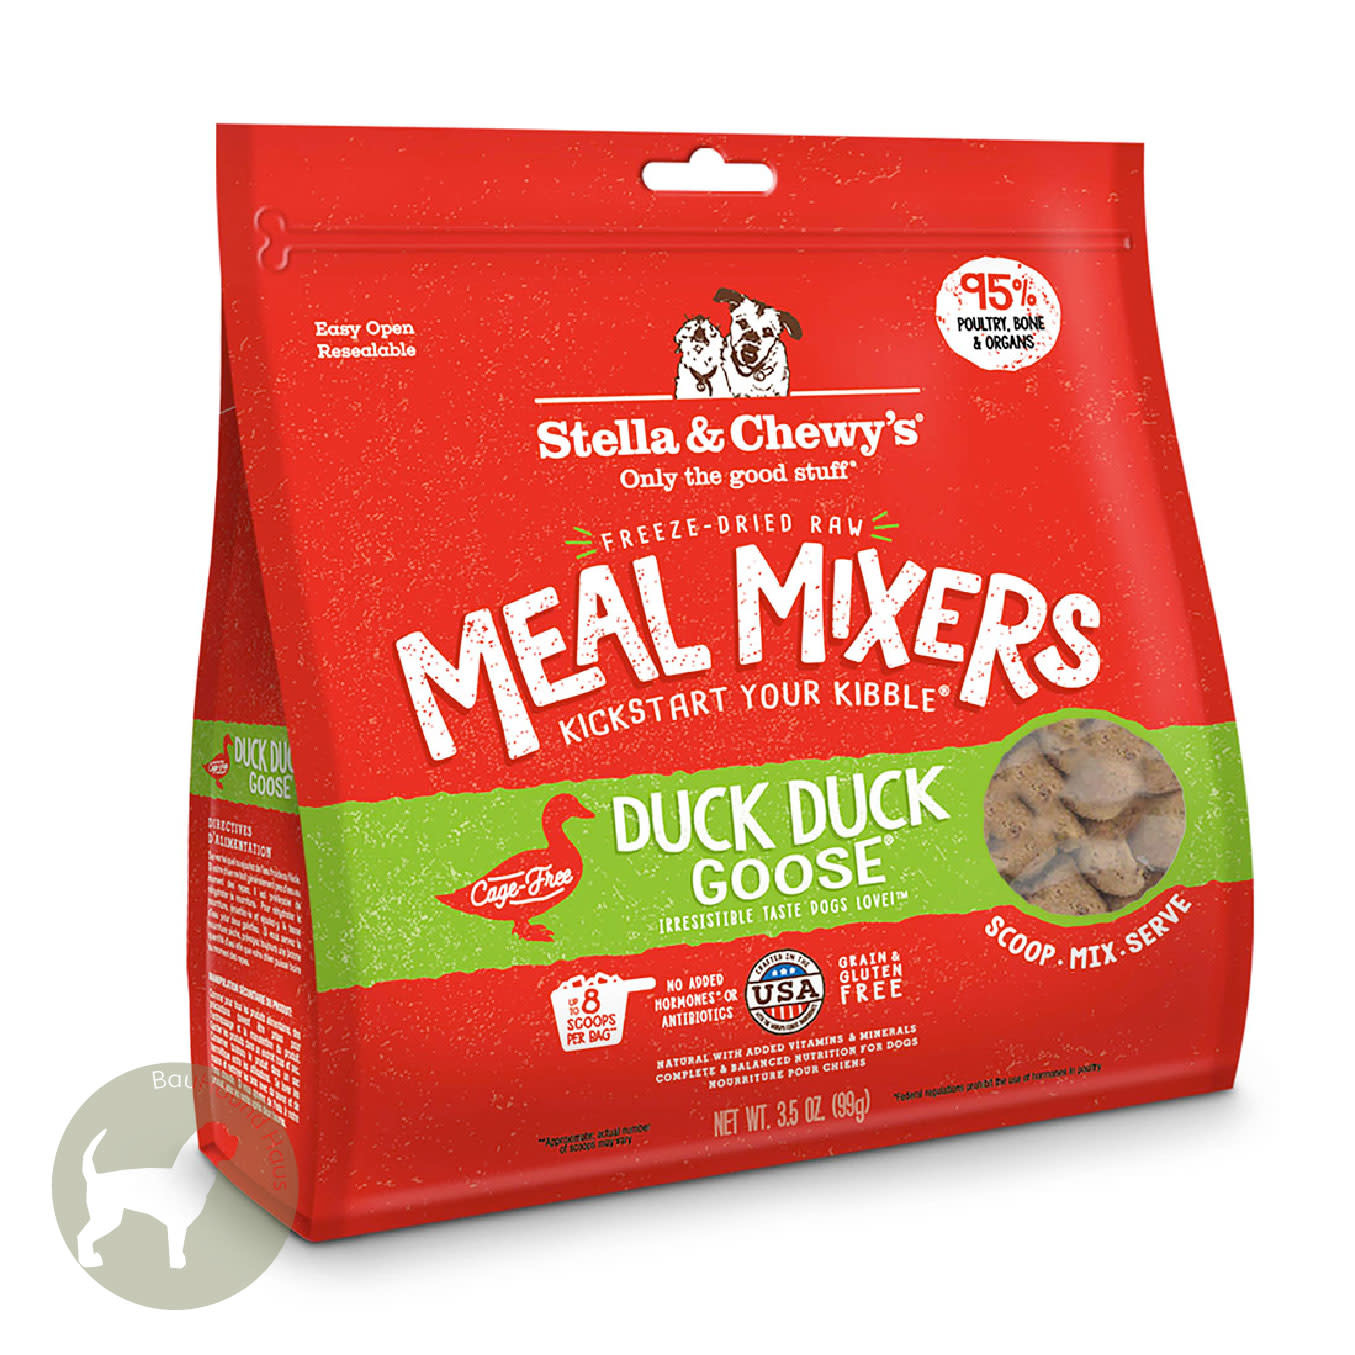 Stella & Chewy's Stella & Chewy's Meal Mixer Duck, Duck Goose, 3.5oz